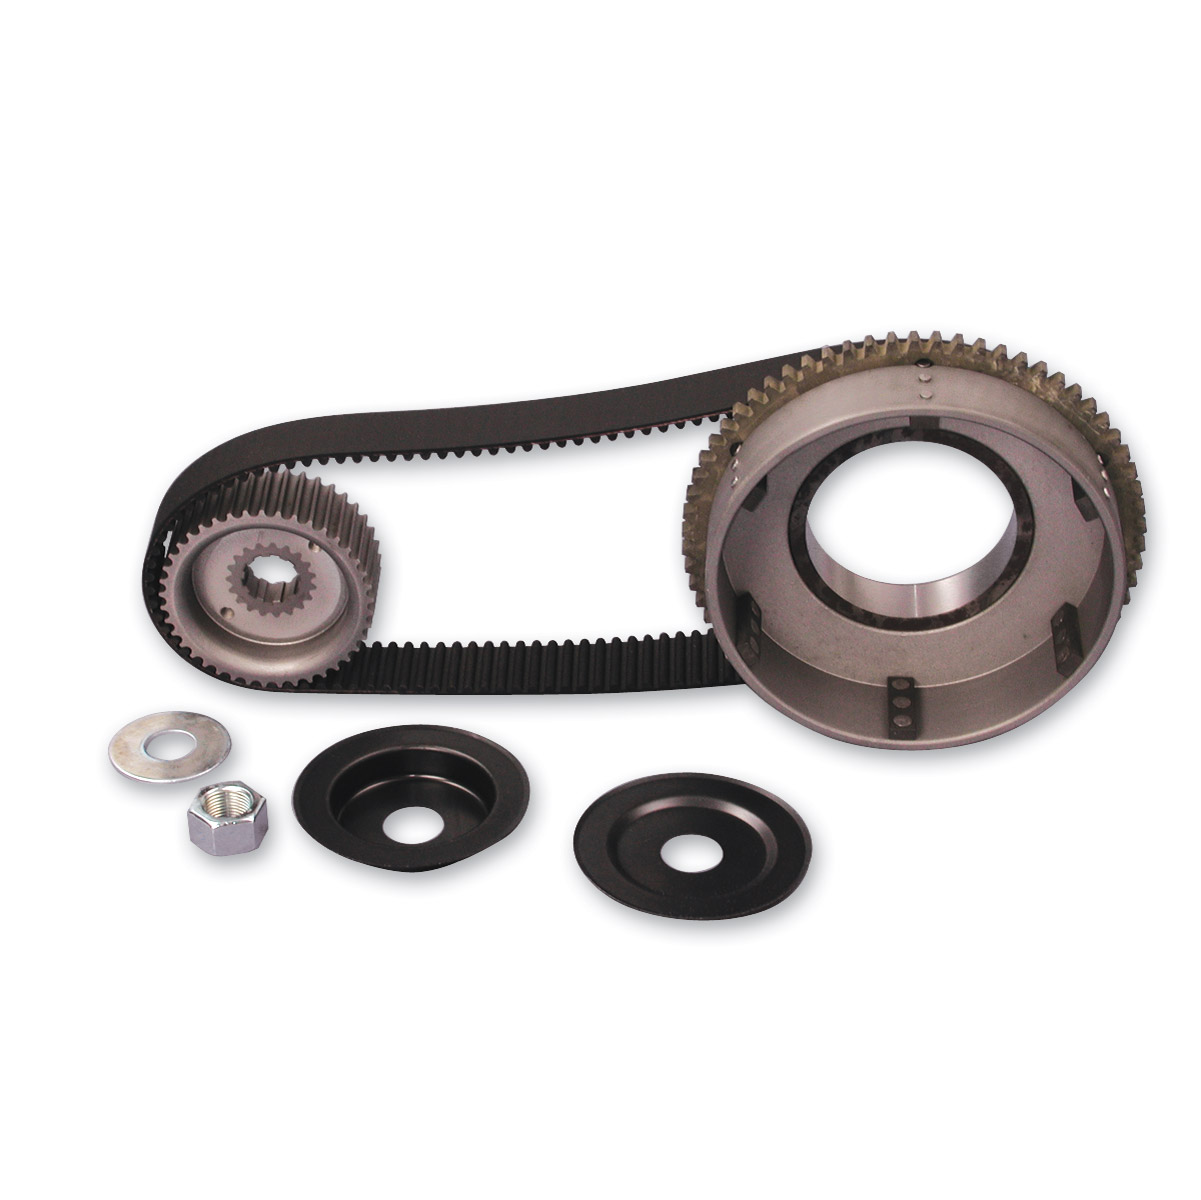 BDL 11mm 1-1/2″ Kit for Electric Start (5-Speed), with Idler Gear